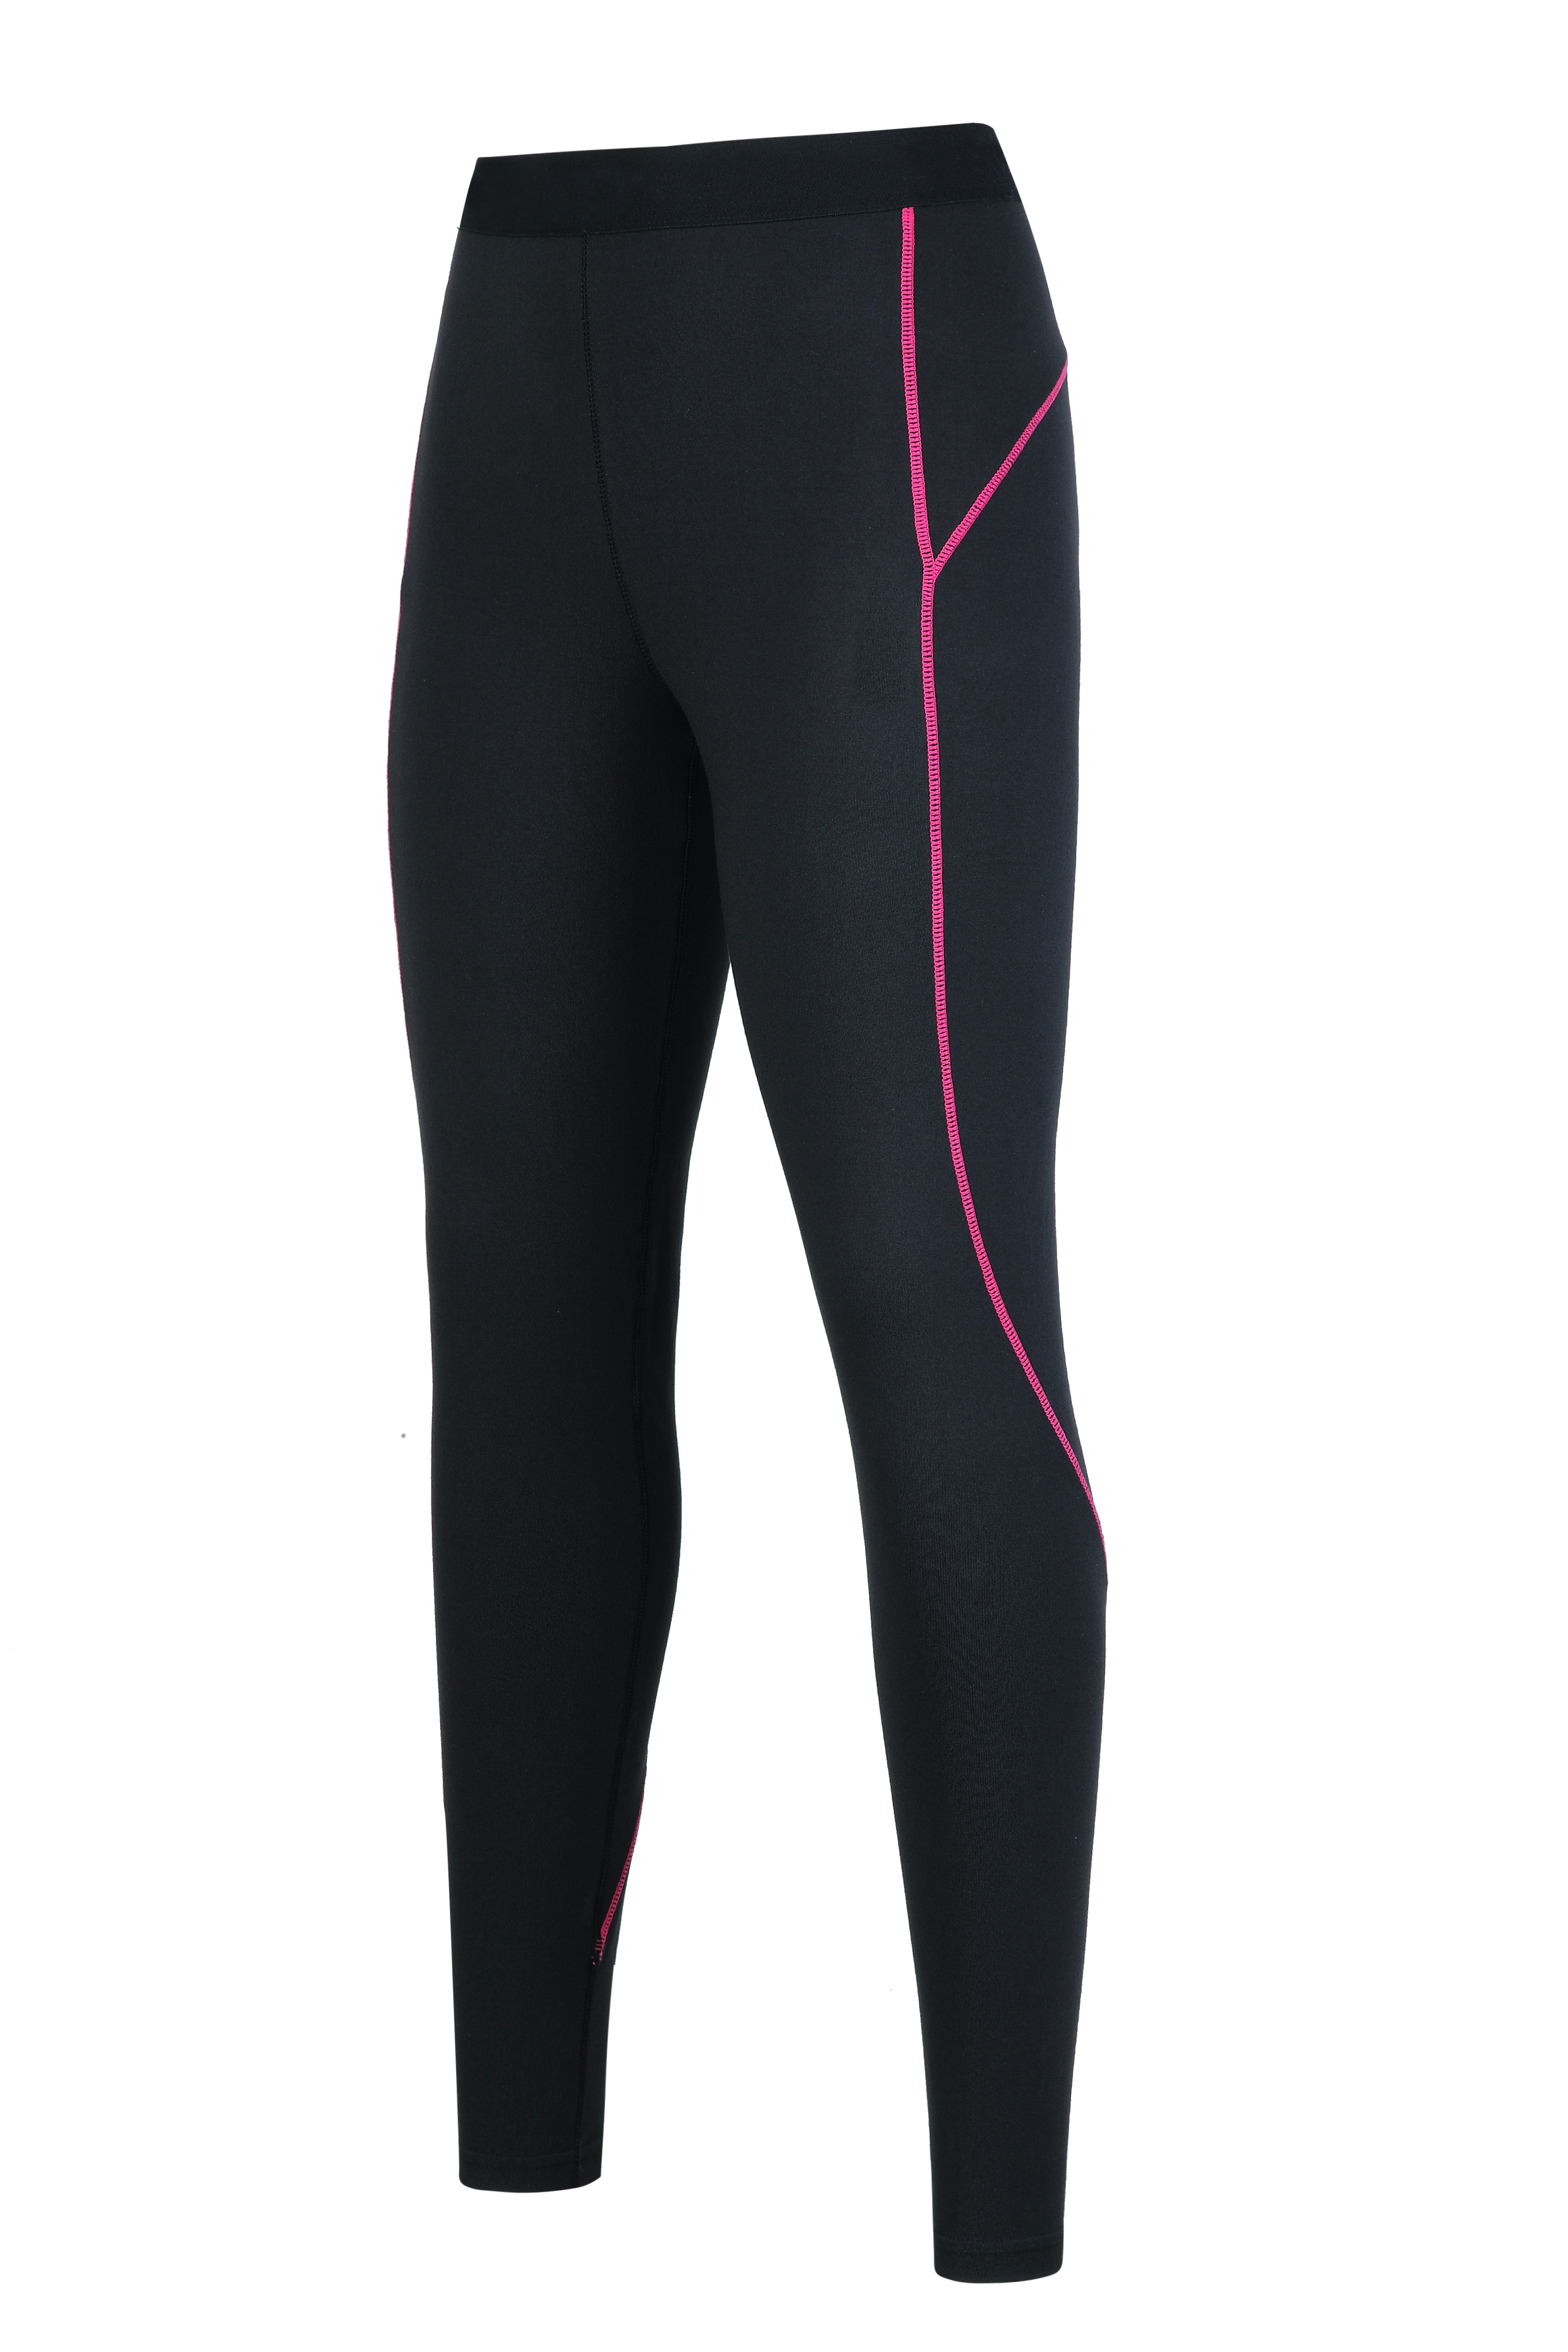 Women's knitted flat lock compression pants.